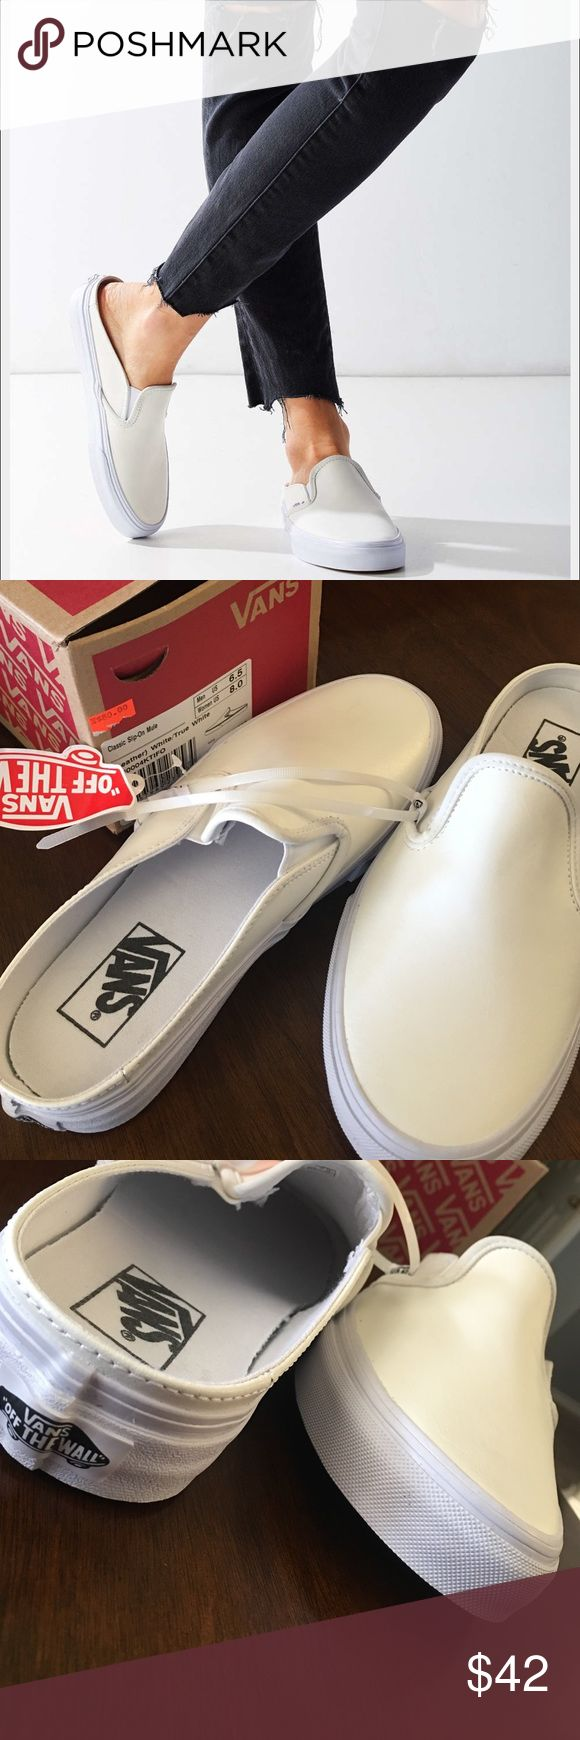 Vans mule one day sale Brand new shoes white must have ✨ Vans Shoes